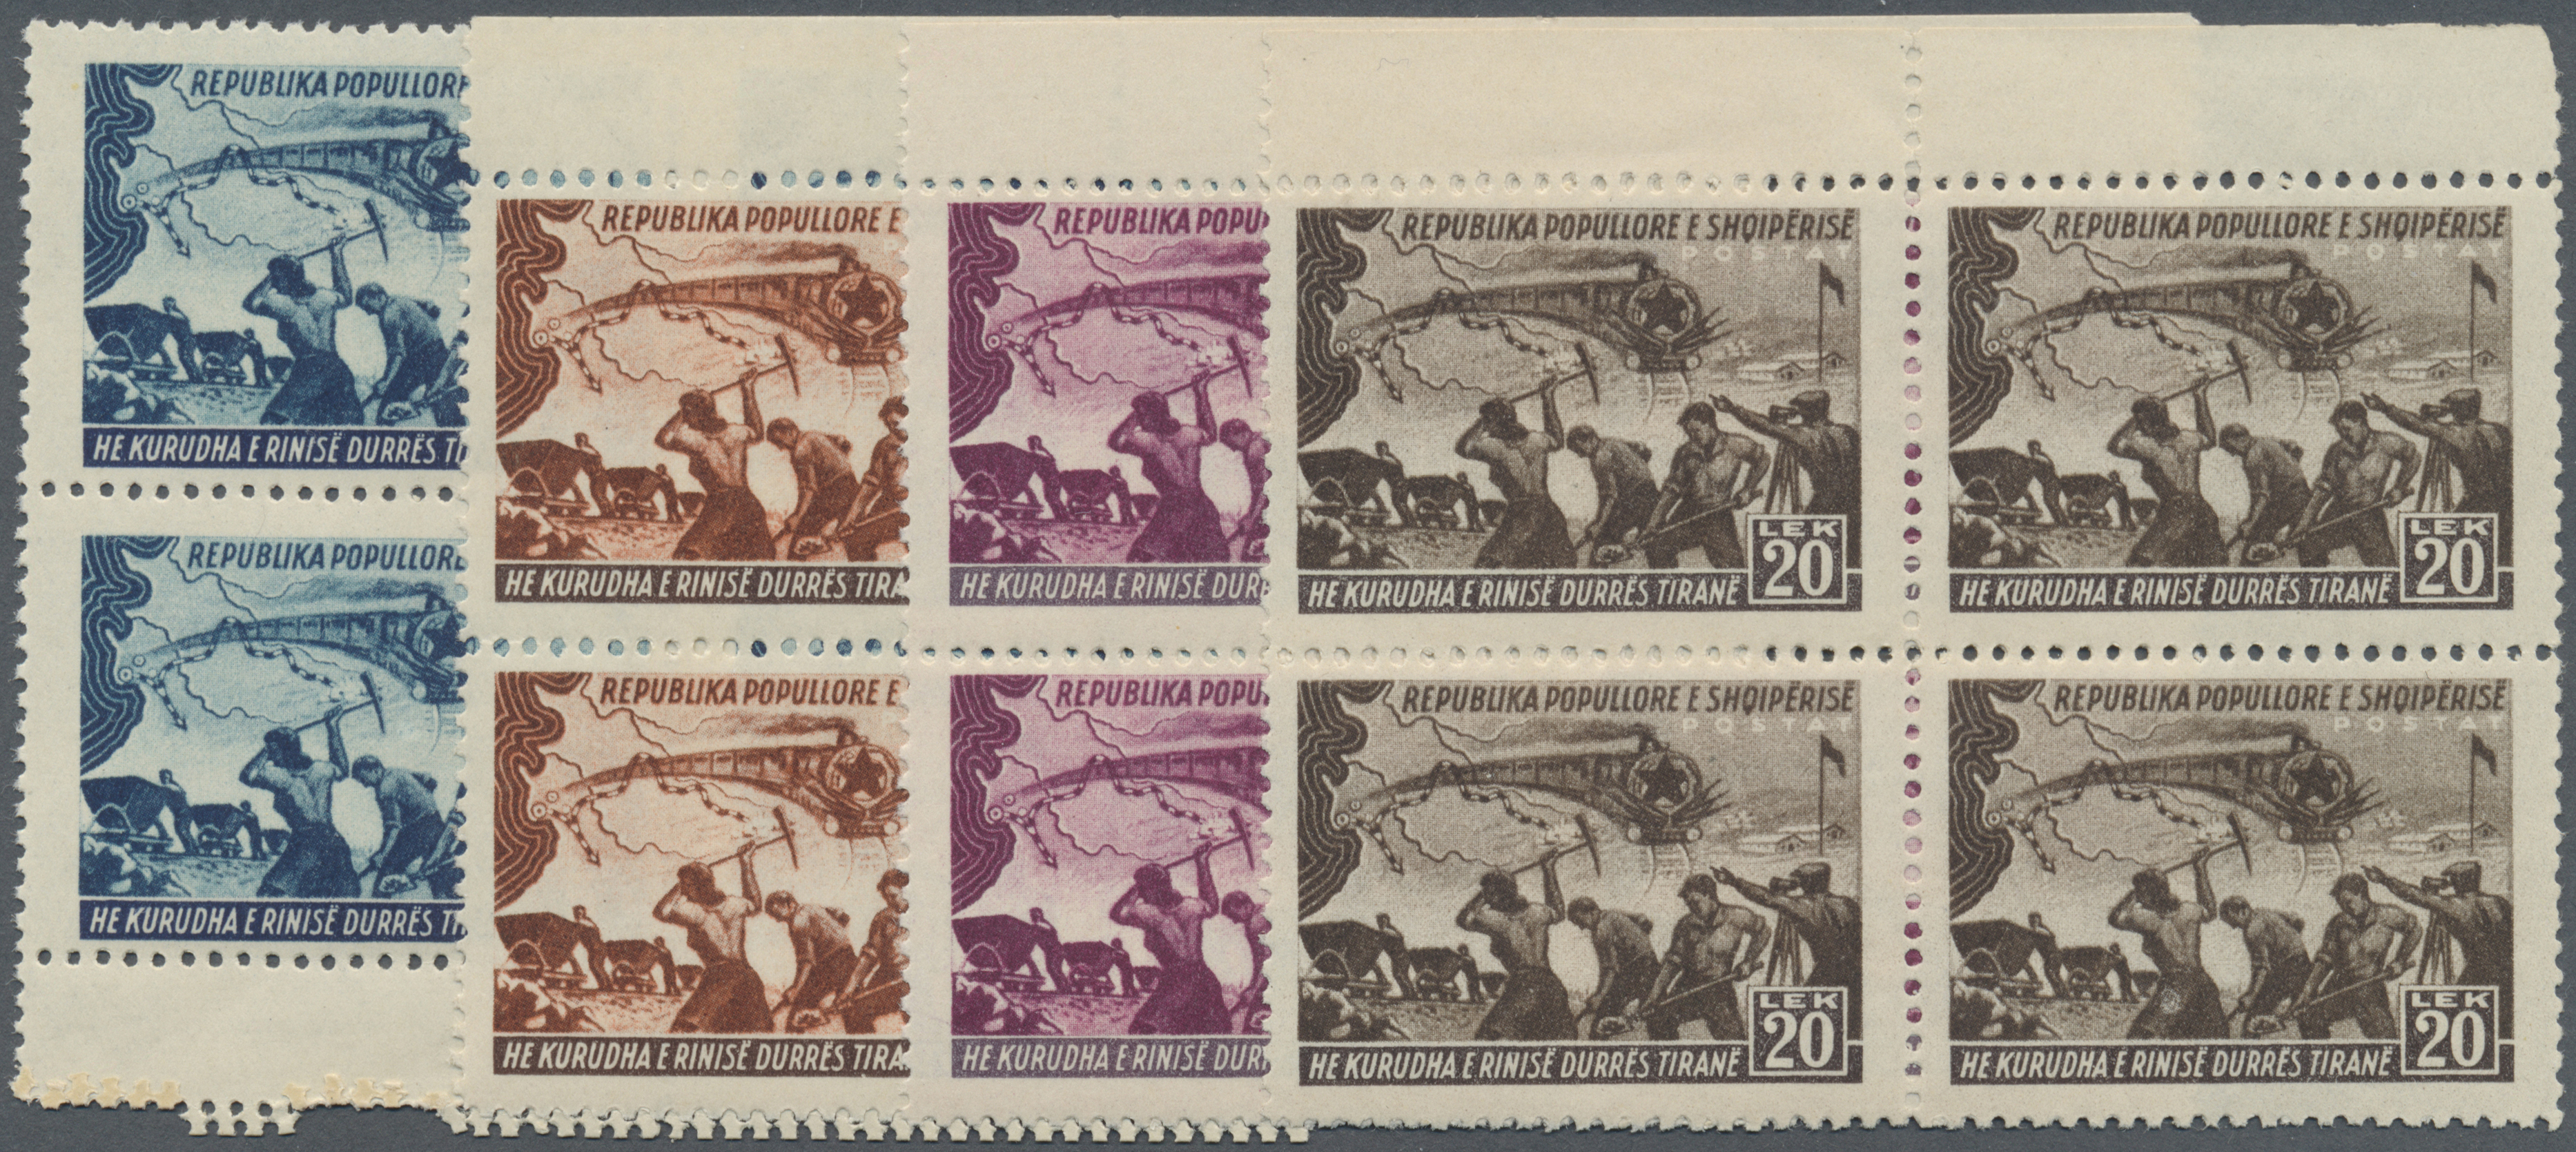 Lot 15539 - albanien  -  Auktionshaus Christoph Gärtner GmbH & Co. KG Single lots Philately Overseas & Europe. Auction #39 Day 4